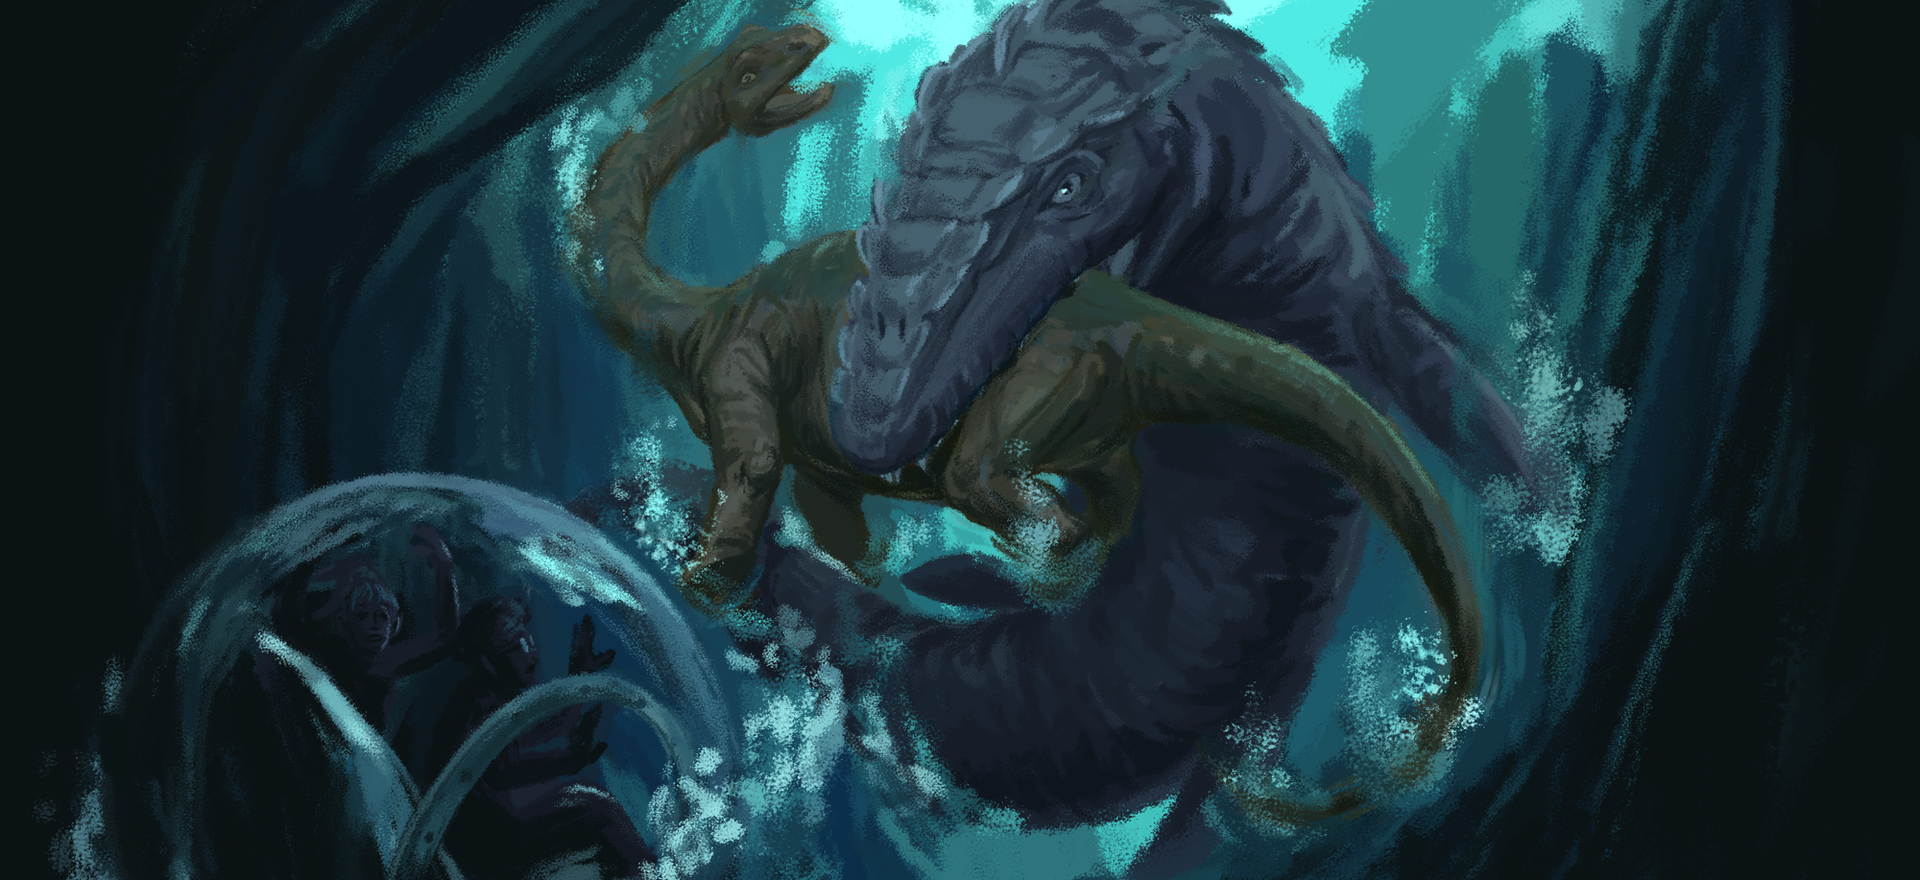 jurassic_world_comp_finished_colors_02.p